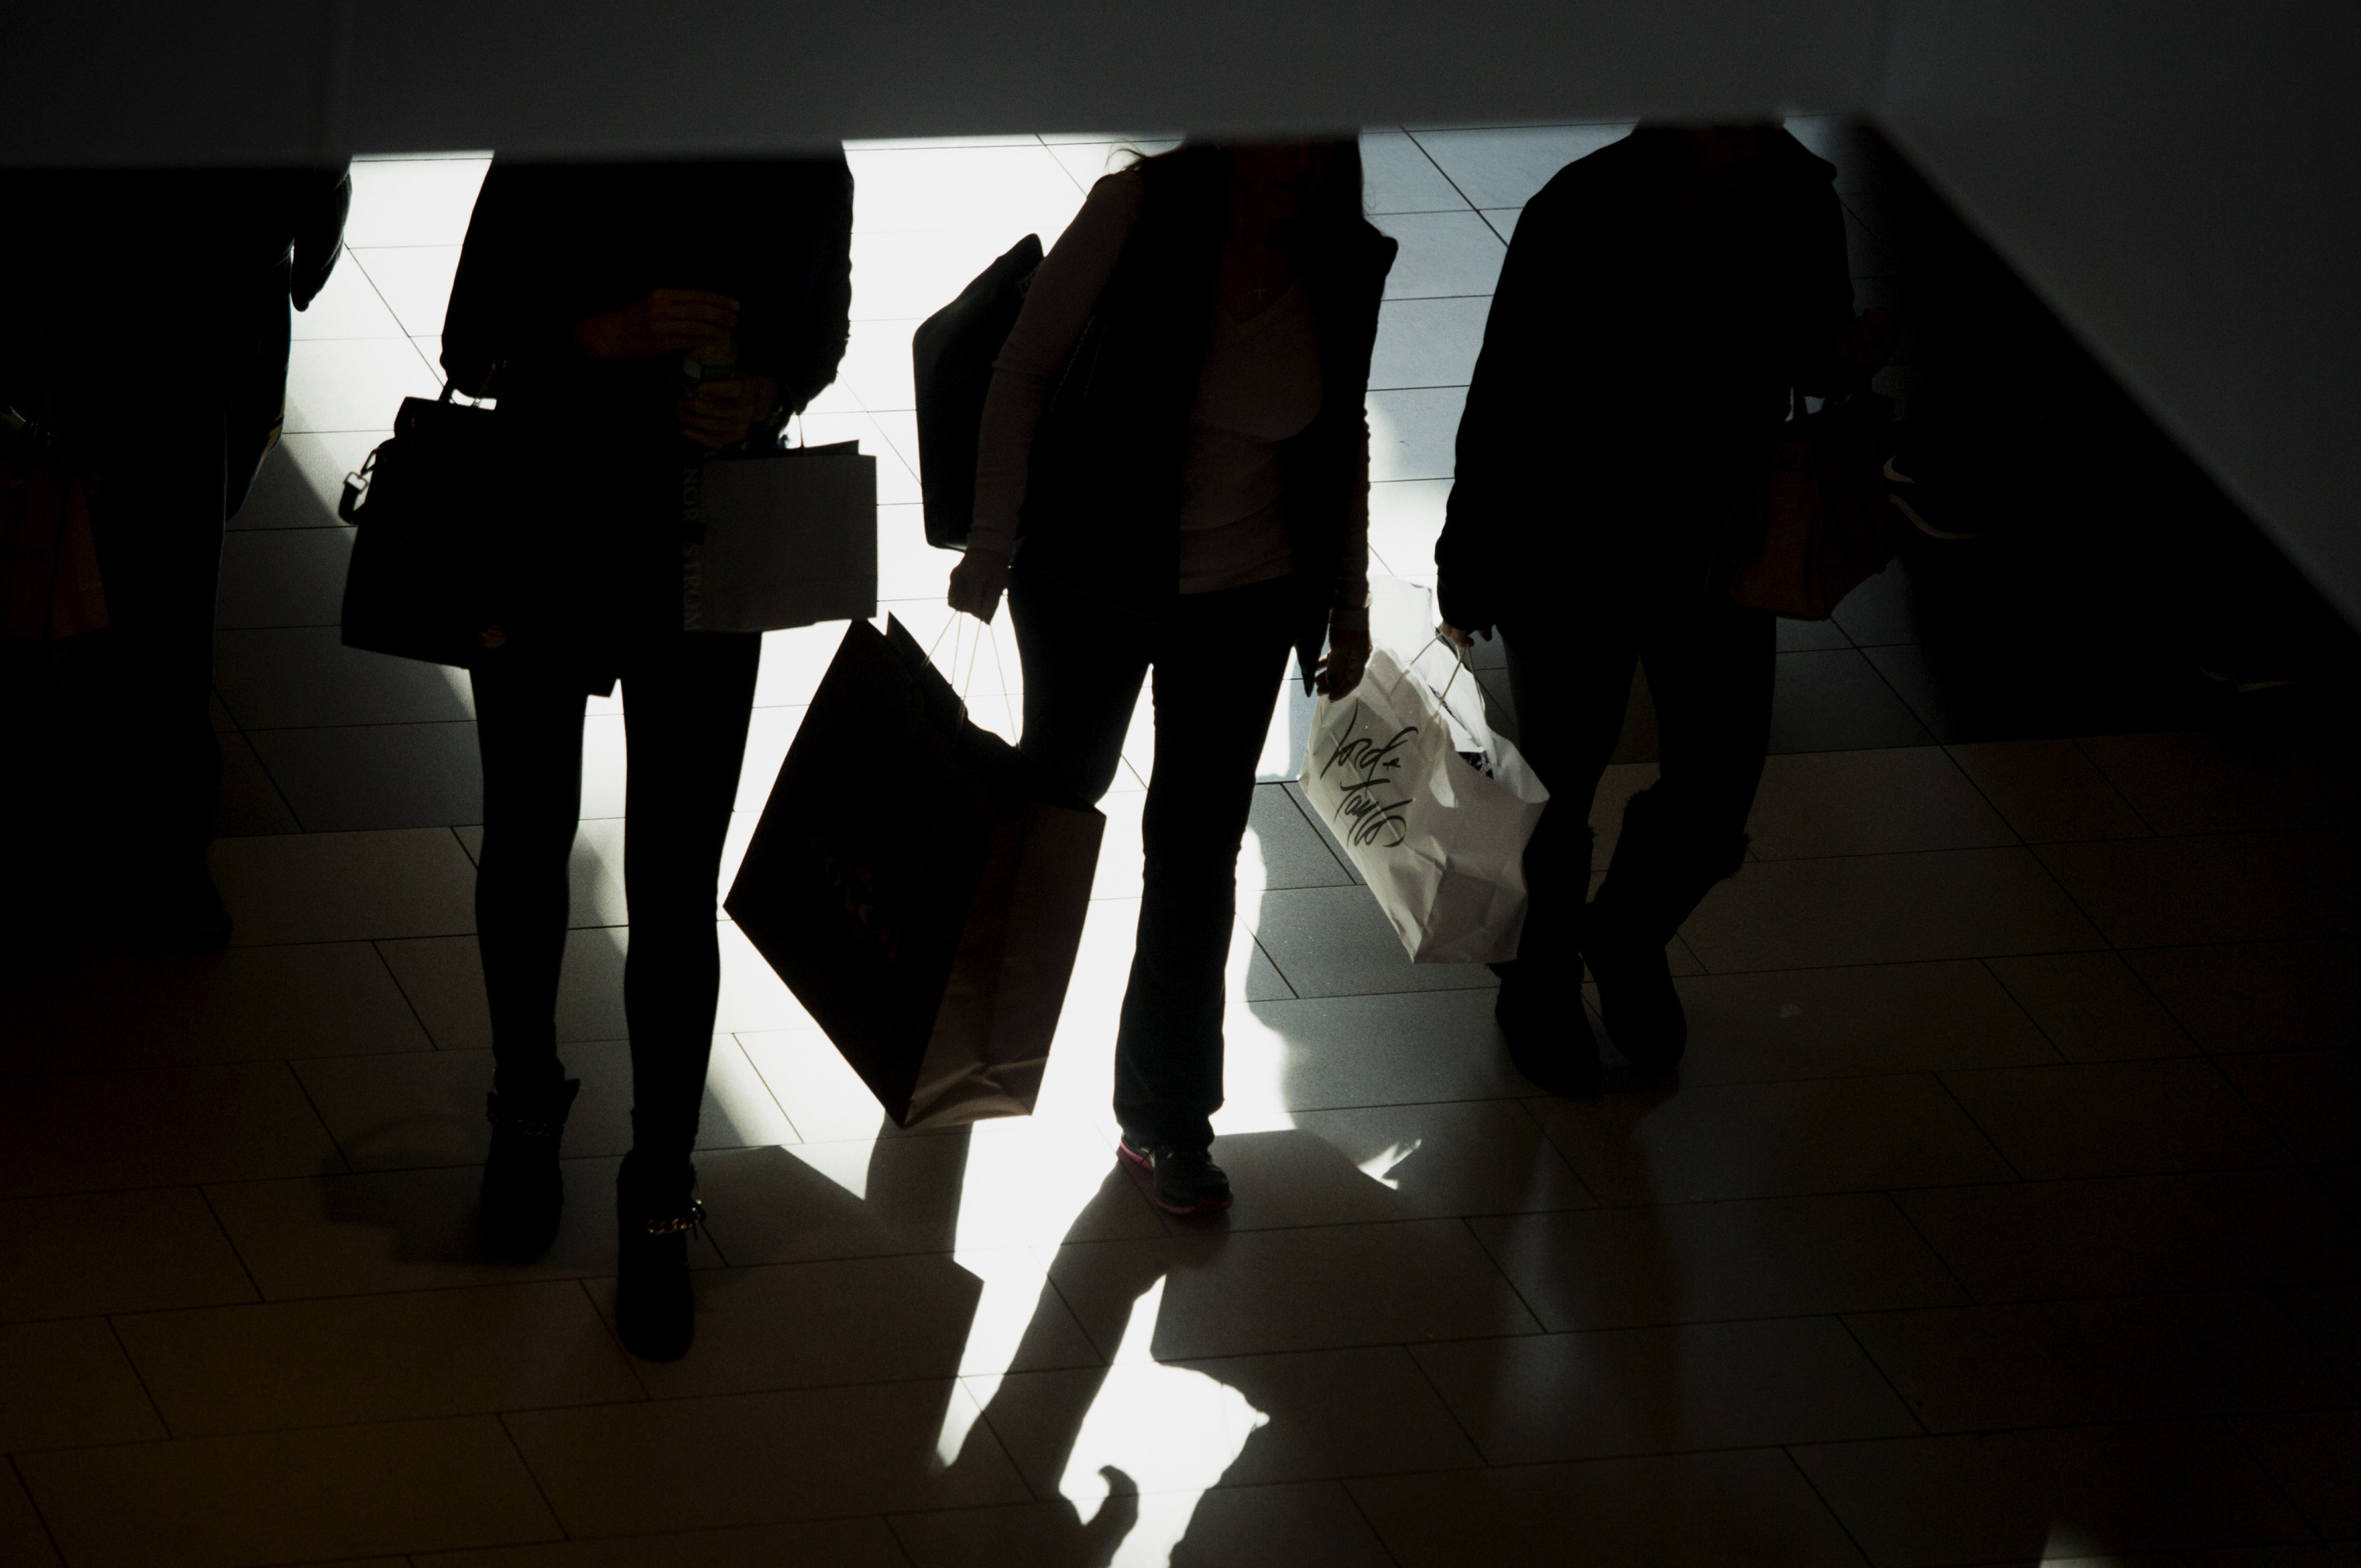 silhouettes of shoppers seen carrying bags